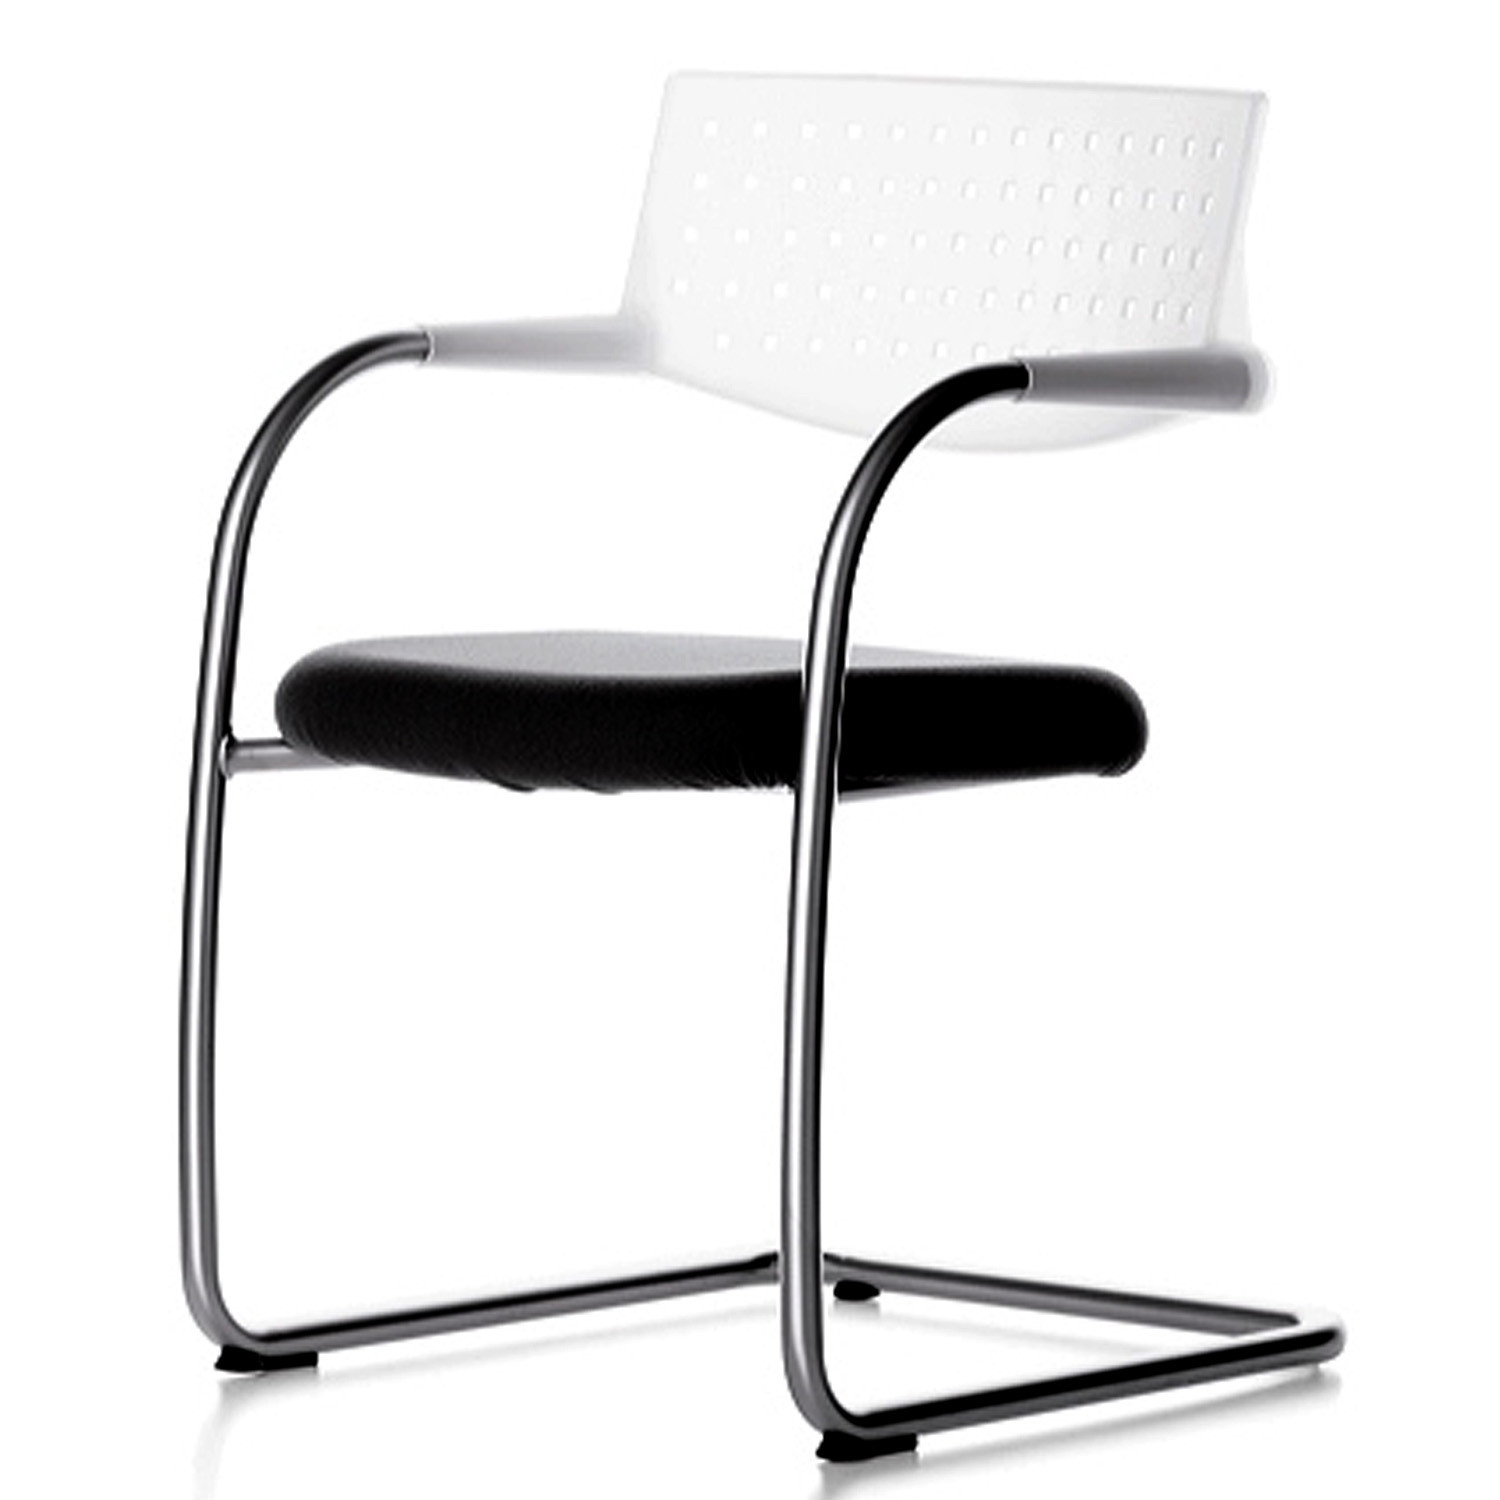 Visavis 2 Cantilever Meeting Chair